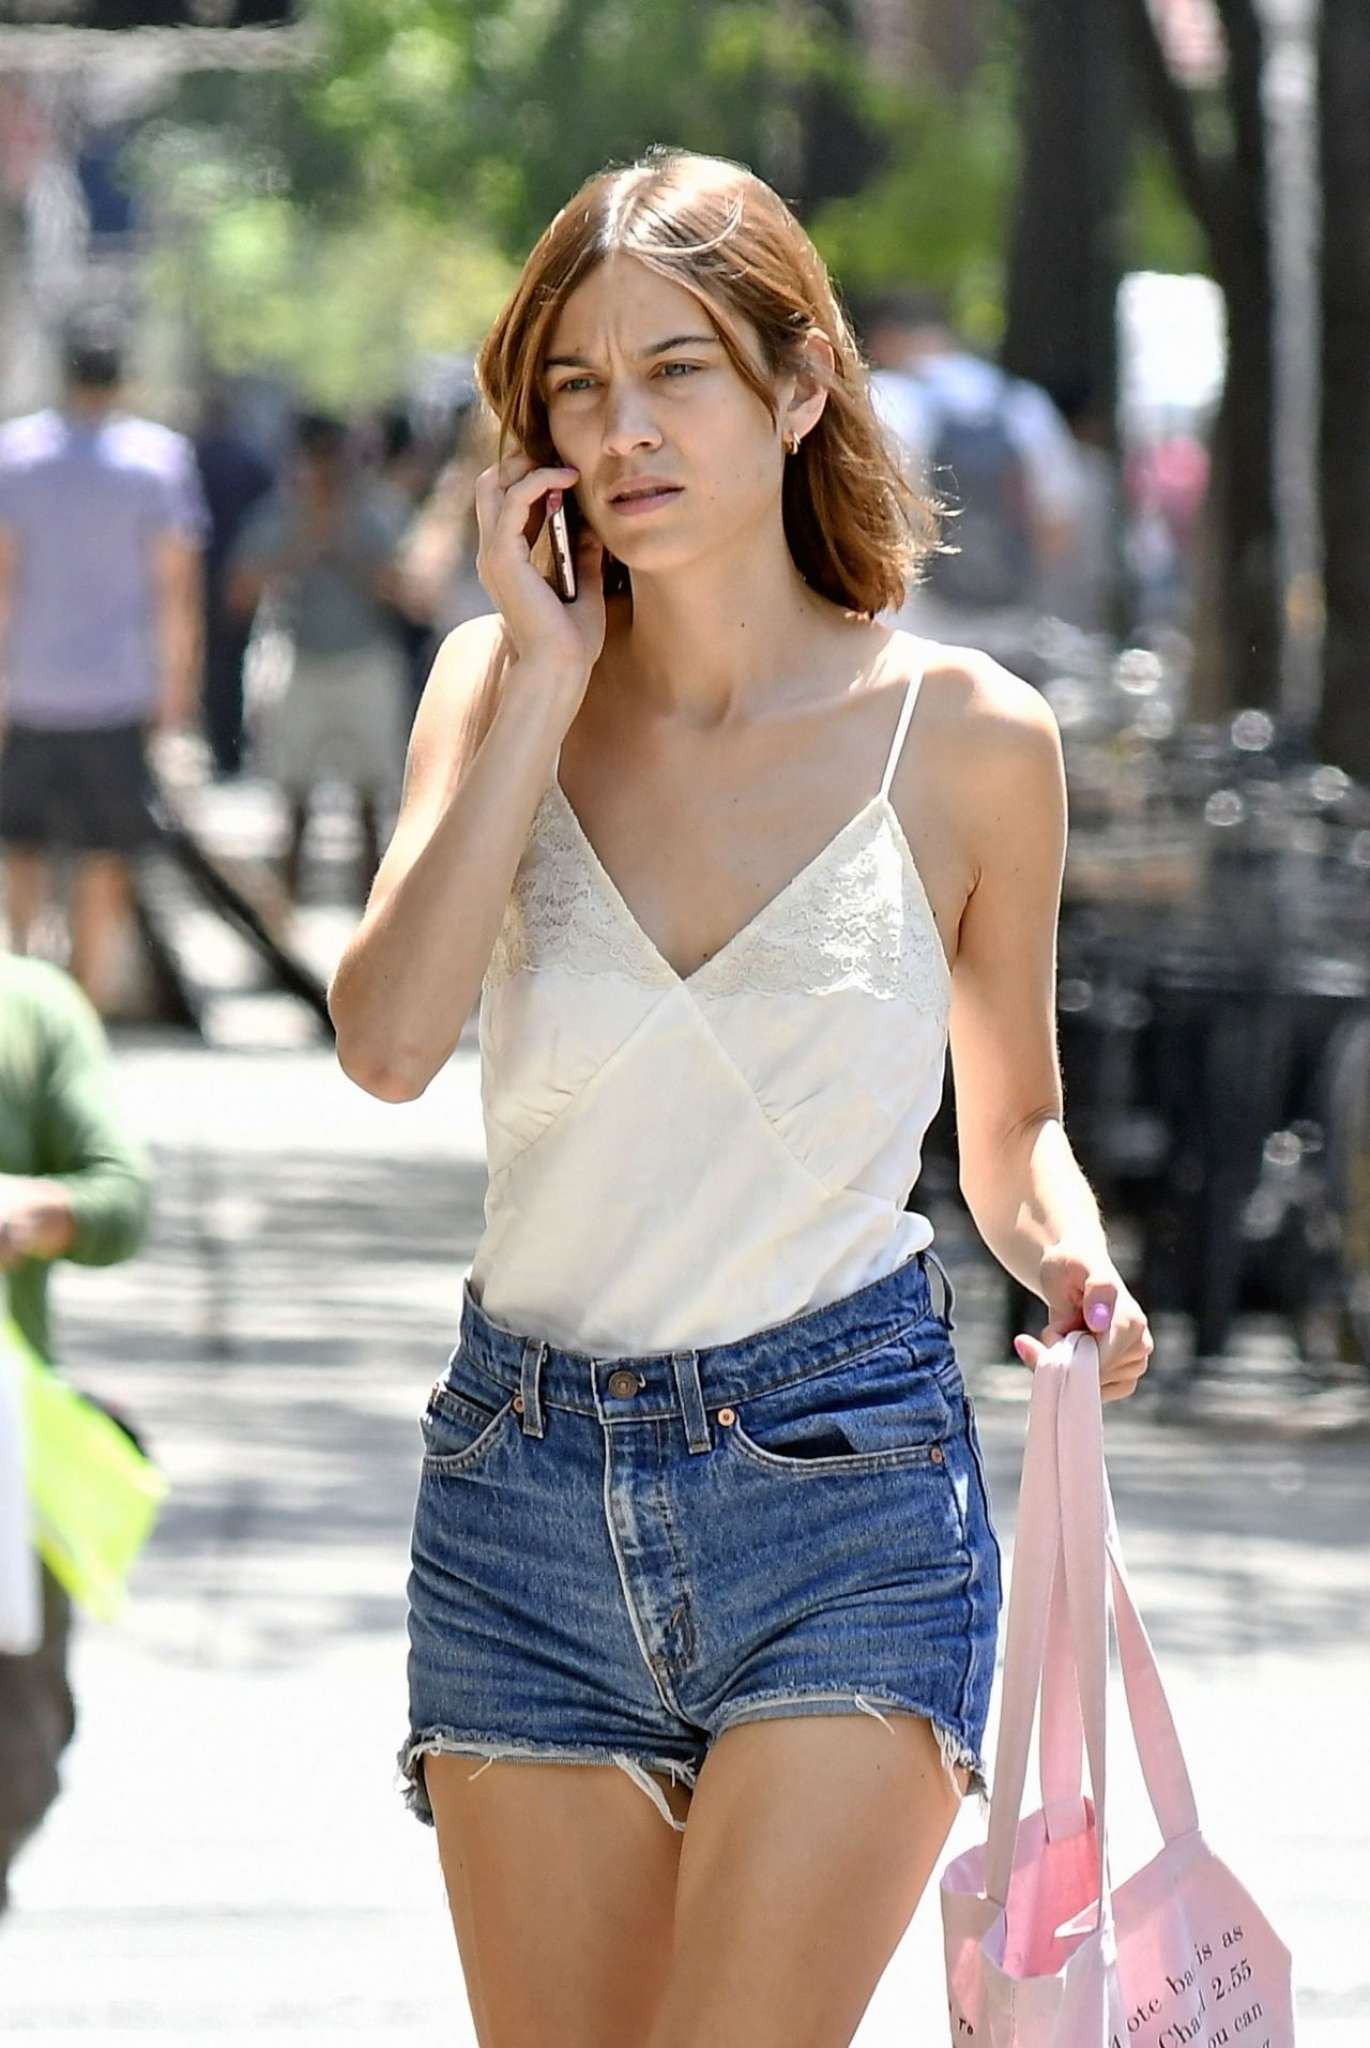 Alexa Chung in Jeans Shorts out in NYC